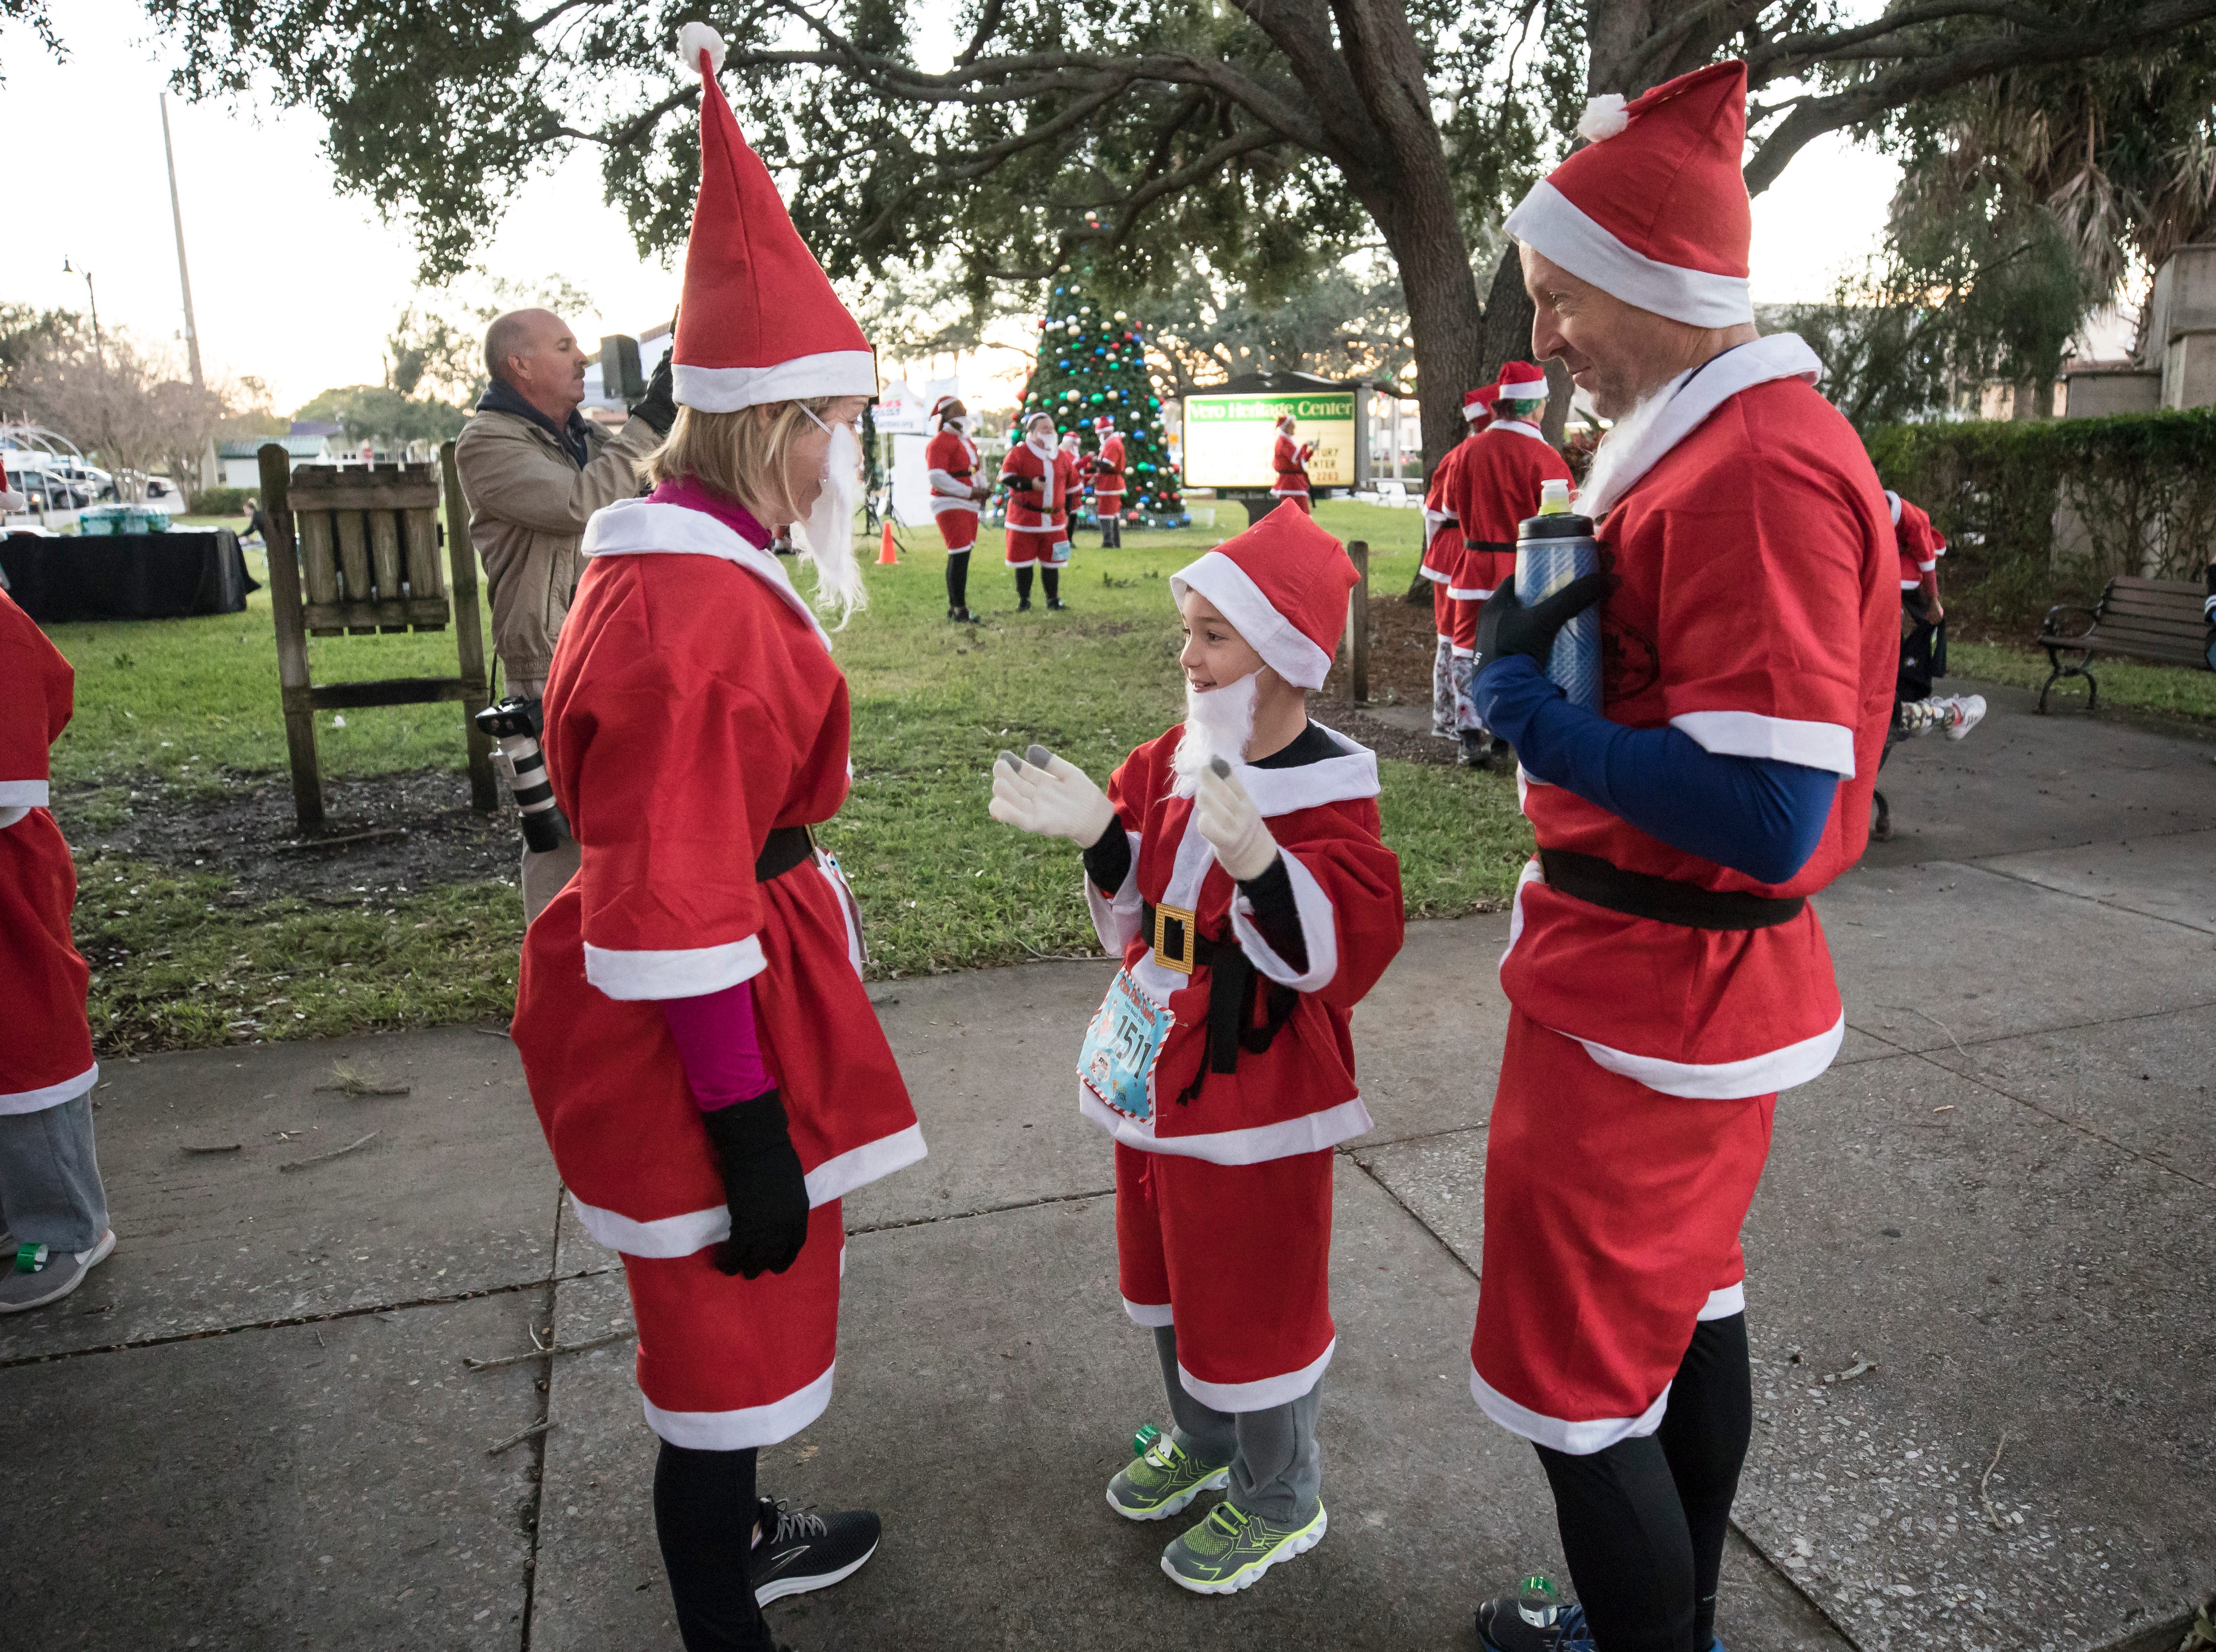 """Elysia Brennan (left) gets ready for the Run Run Santa one-mile race with her 7-year-old son, Cole, and husband, Ryan, on Sunday, Dec. 23, 2018, in Vero Beach. ""They didn't know (they were going to race),"" laughed Elysia. ""I signed them up. I was like, 'I have this big surprise'. It's going to be a new tradition. We do this and go get breakfast every year. It seemed like a fun way to get into the holiday spirit."""